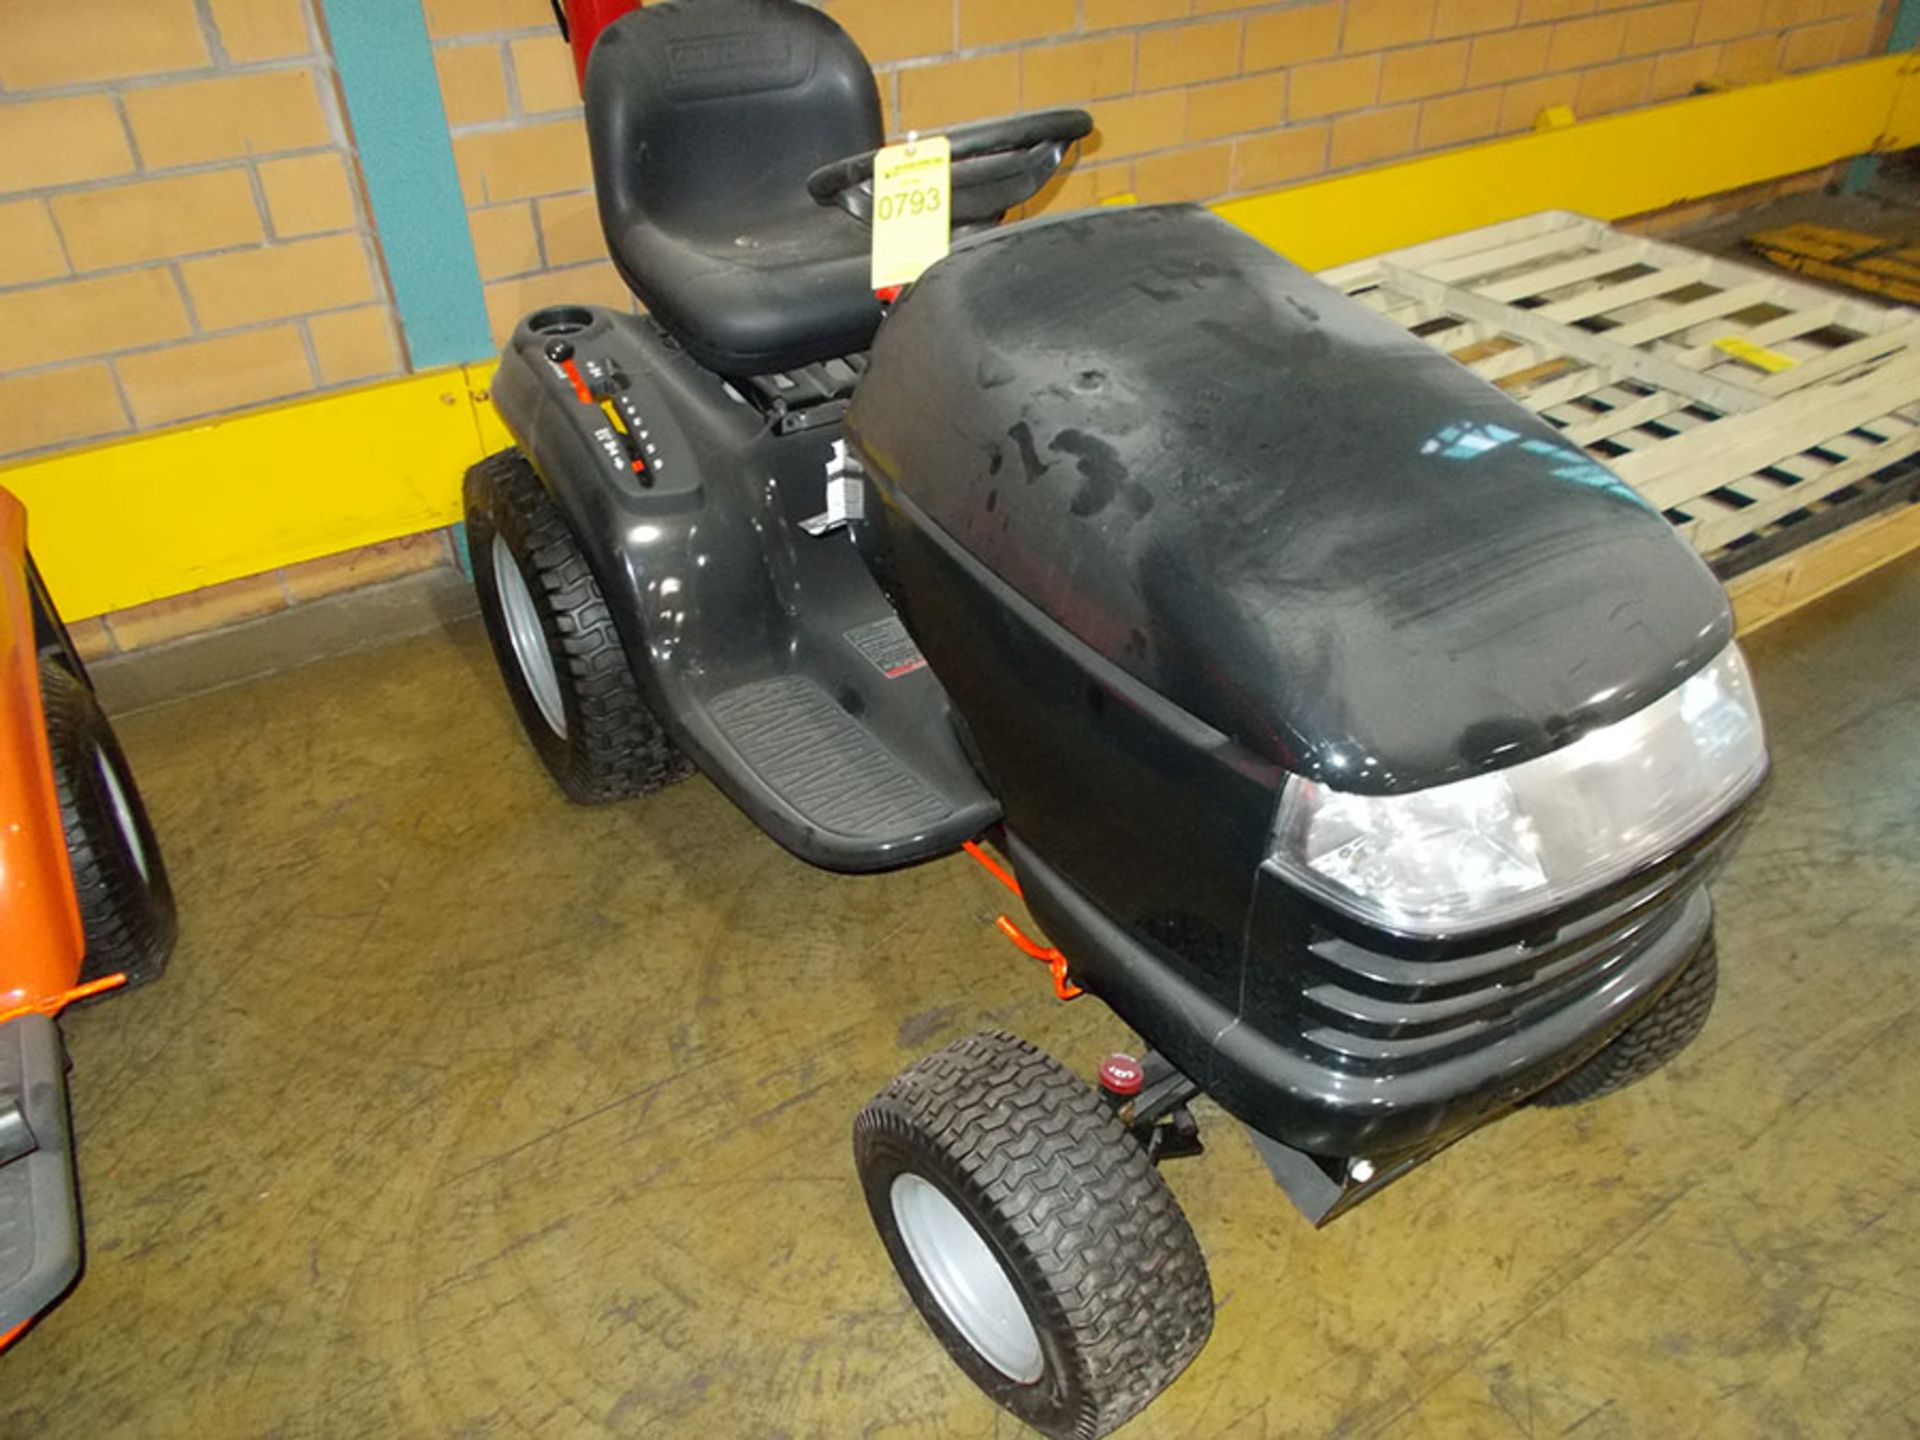 Lot 793 - CRAFTSMAN RIDING LAWNMOWER (OUT OF SERVICE)